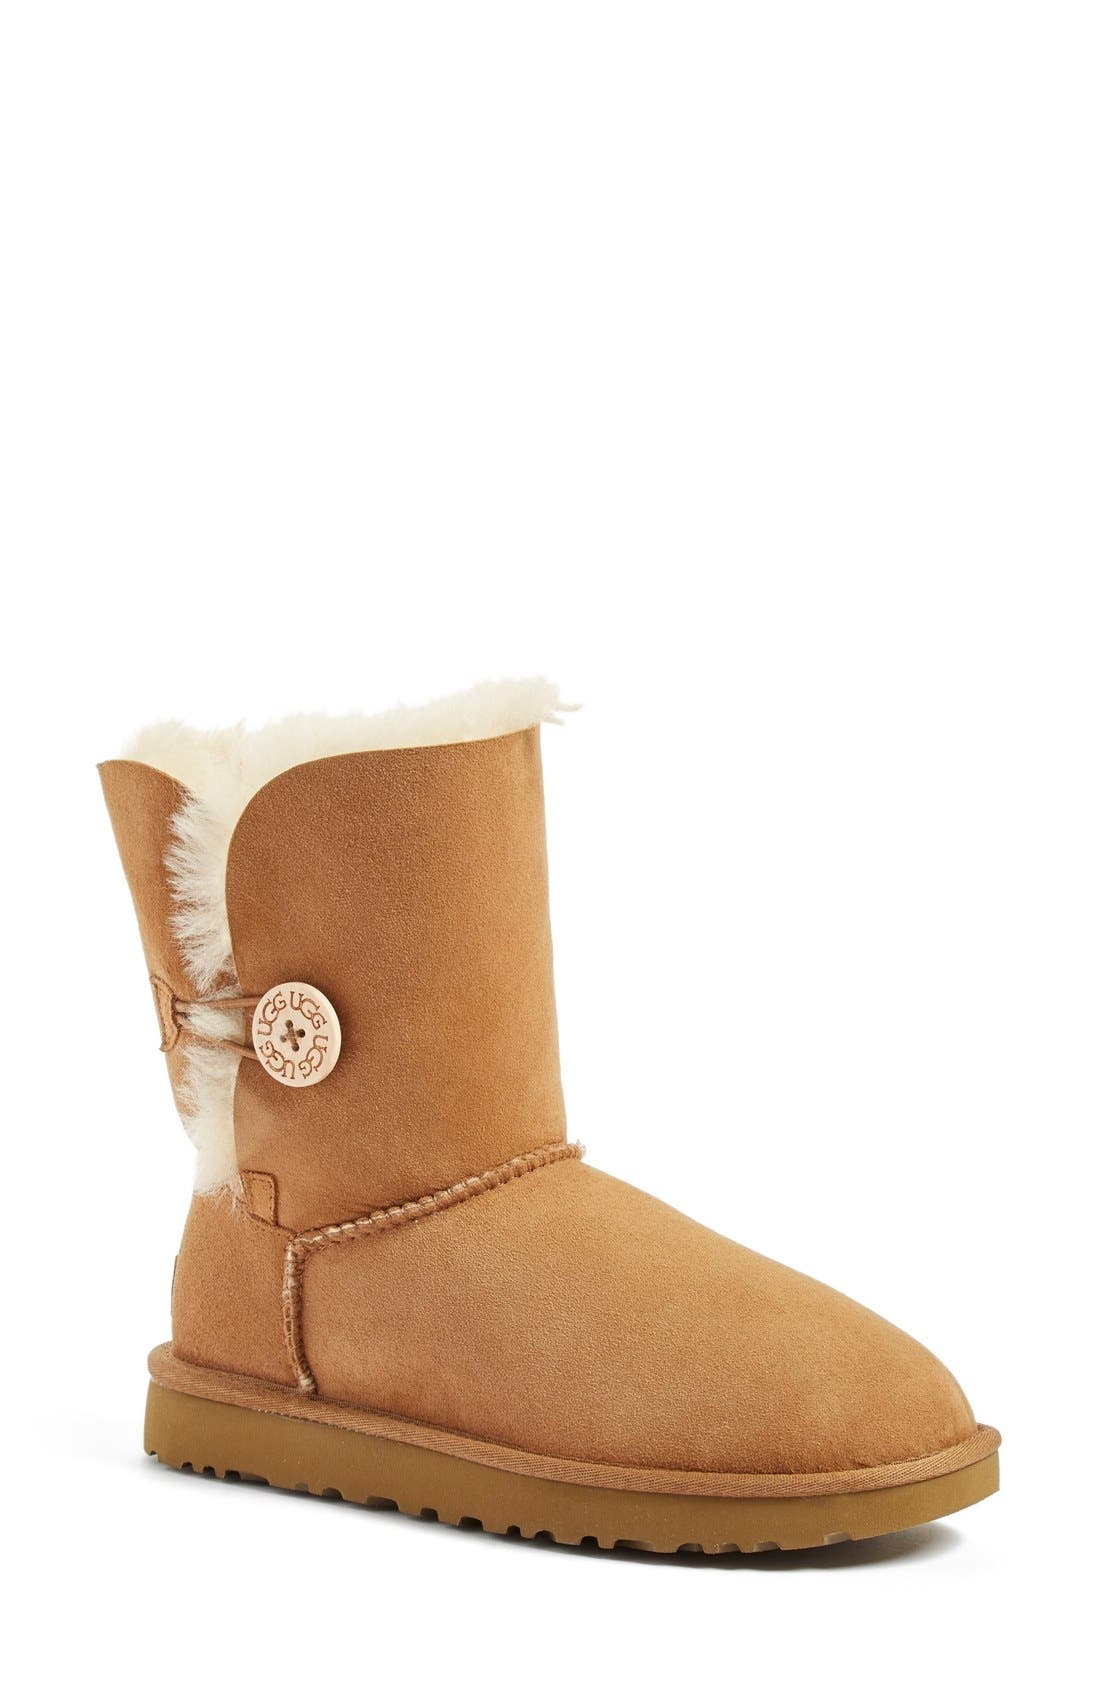 Main Image - UGG® 'Bailey Button II' Boot (Women)